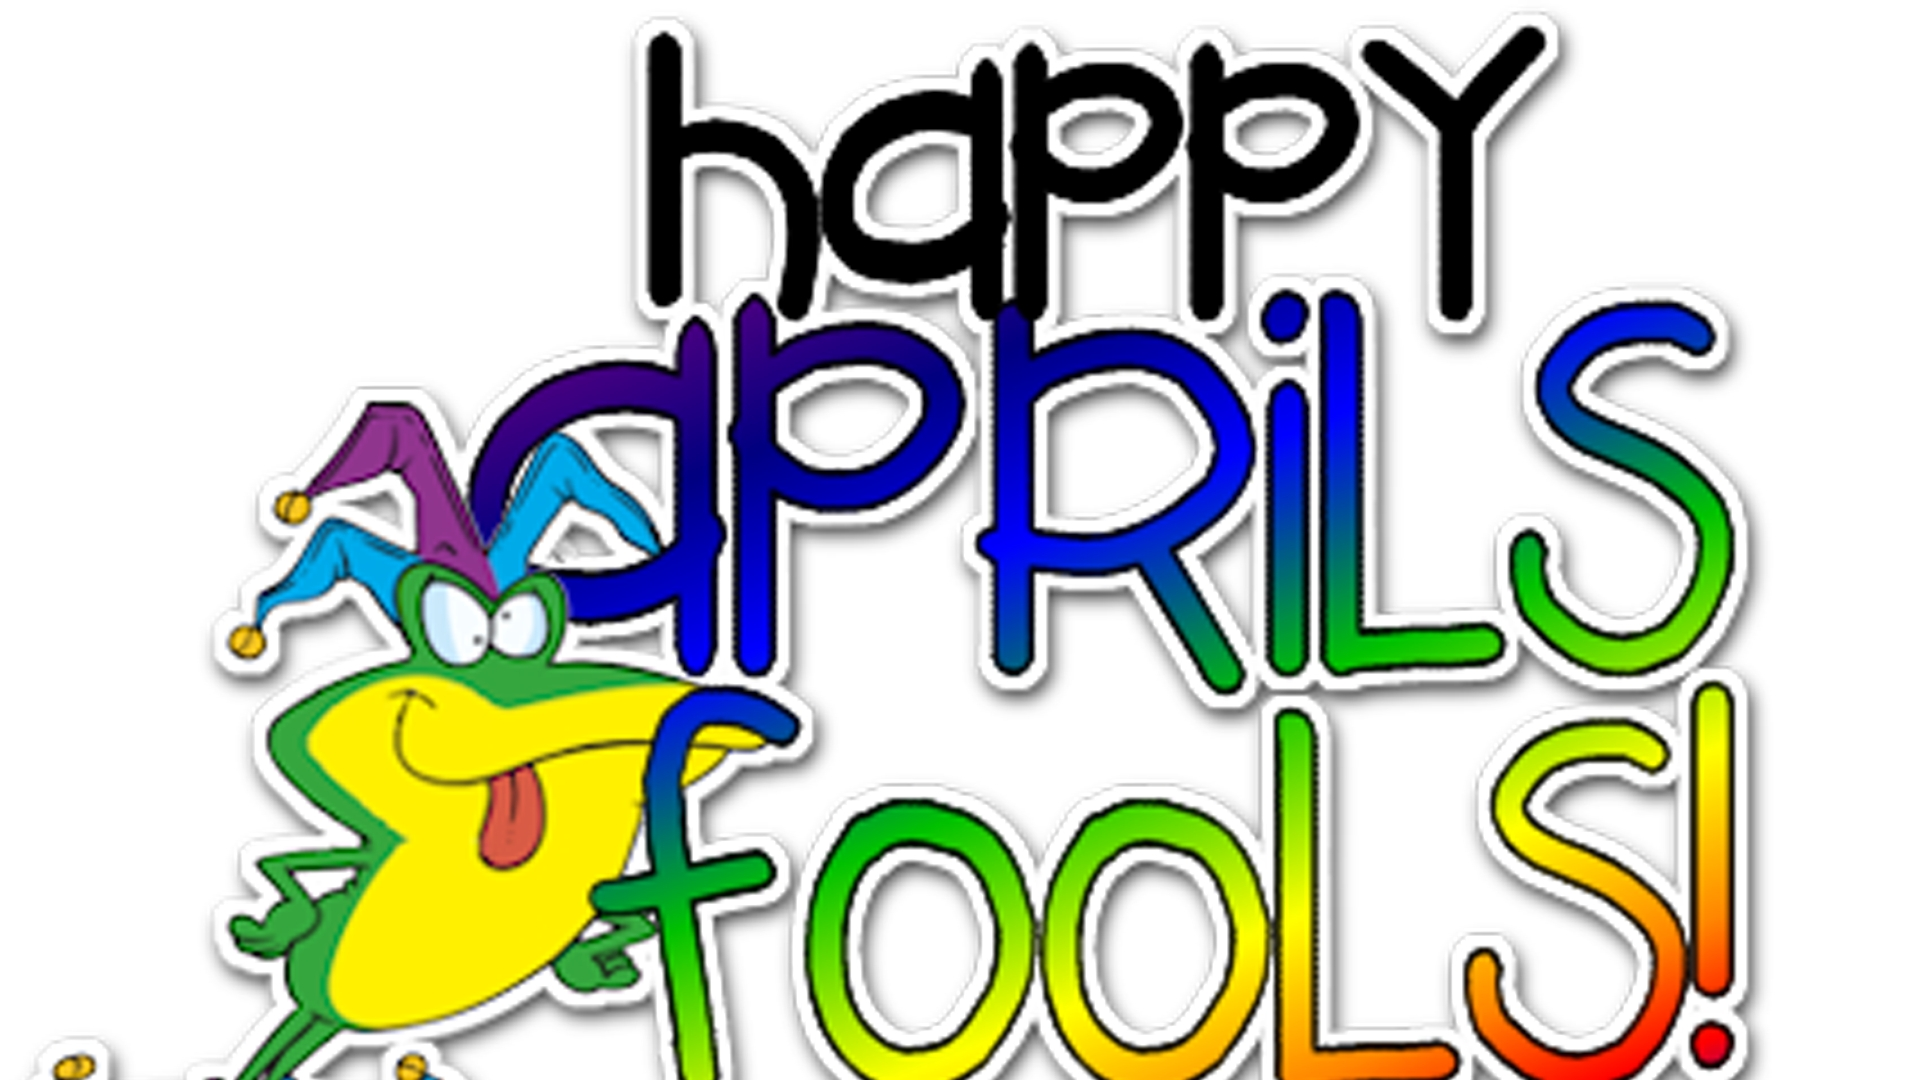 Free Fool Cliparts, Download Free Clip Art, Free Clip Art on.